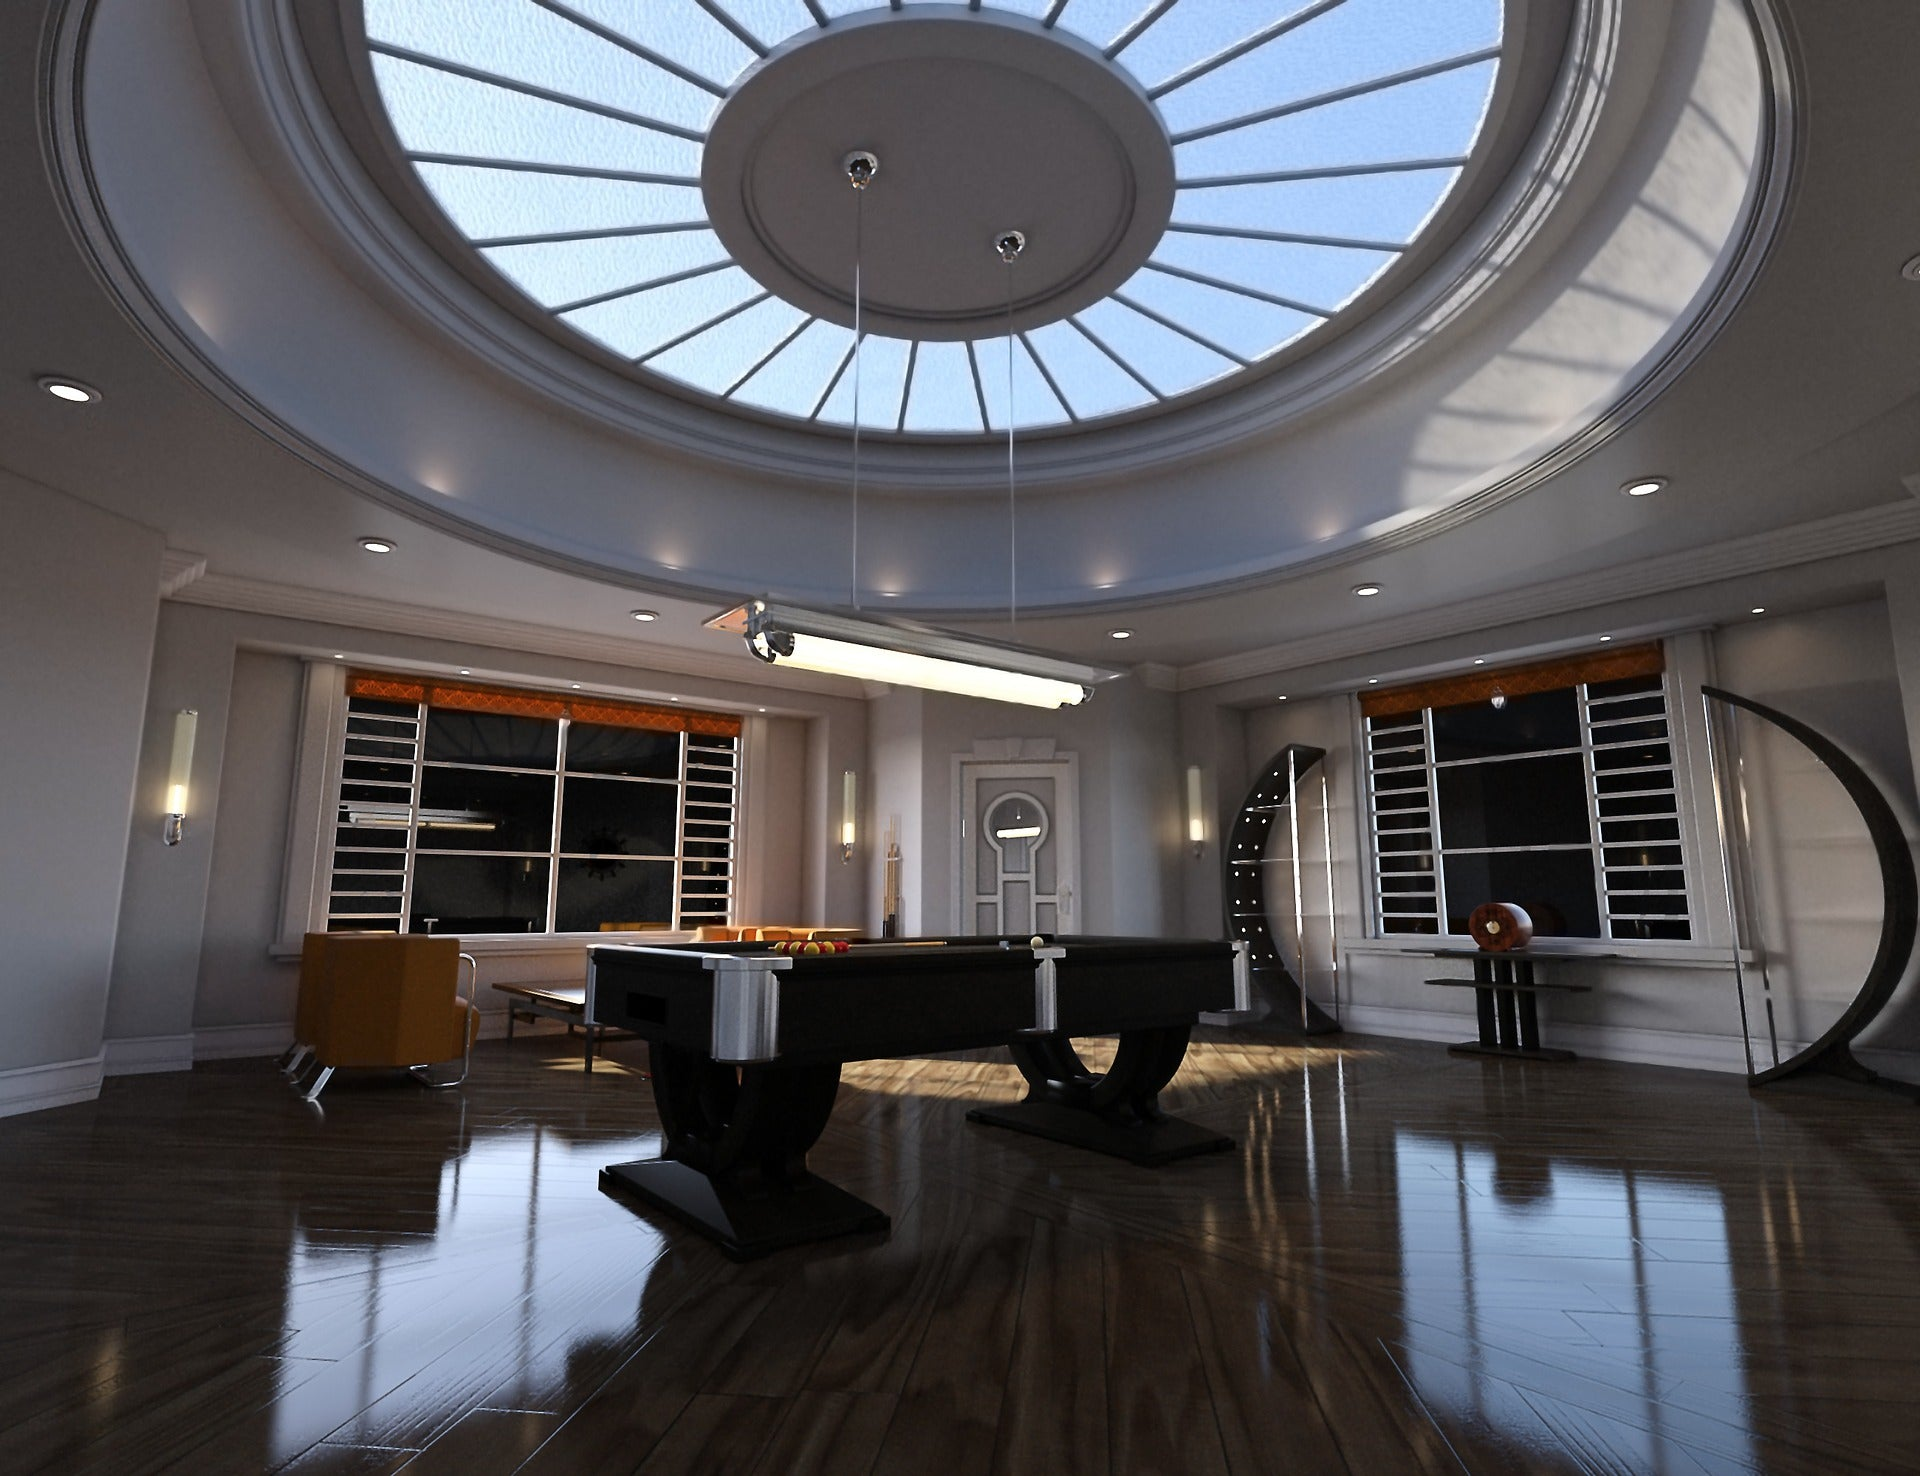 Benefits of Having a Skylight in Your Home or Business